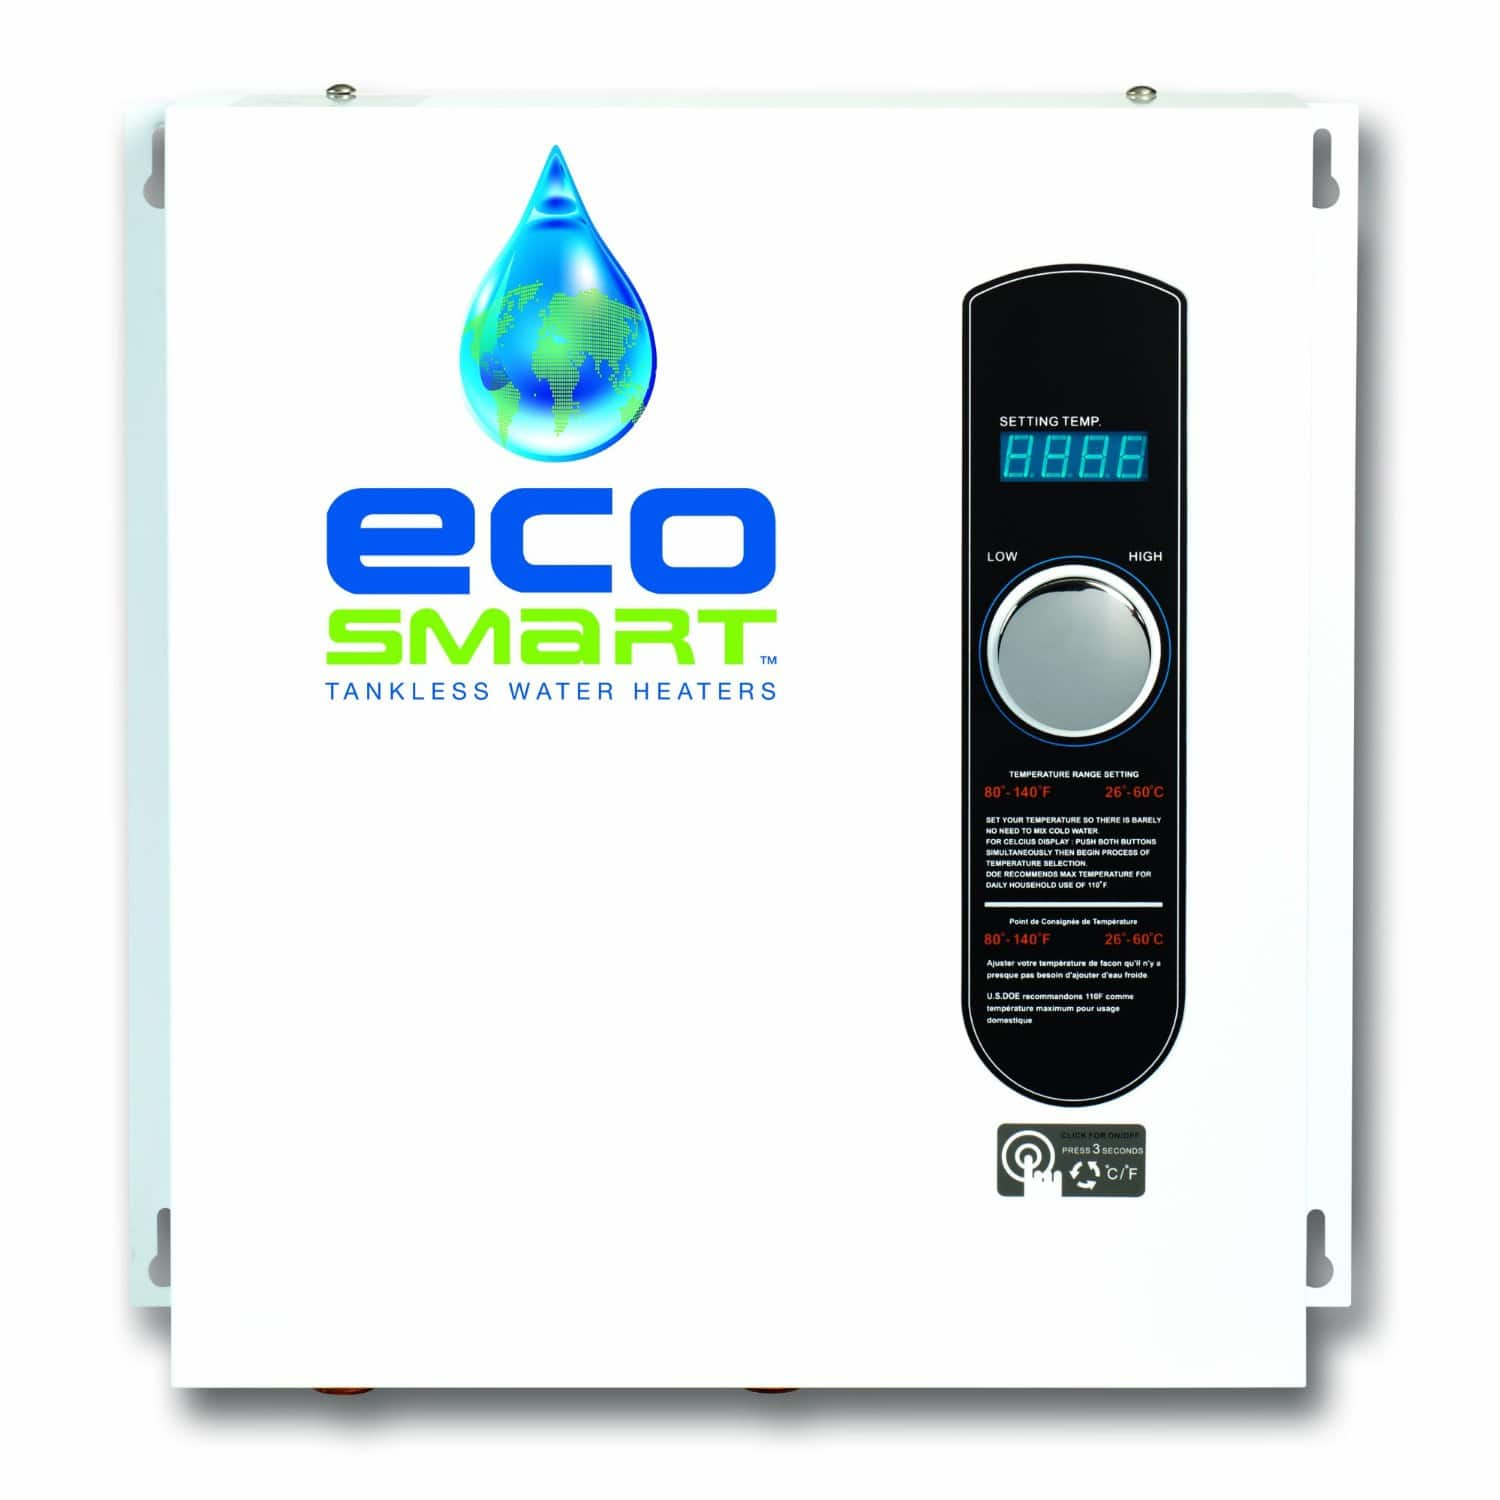 EcoSmart Eco 27 Electric 240v 27kw Tankless Water Heater $336 + Free Shipping via Amazon